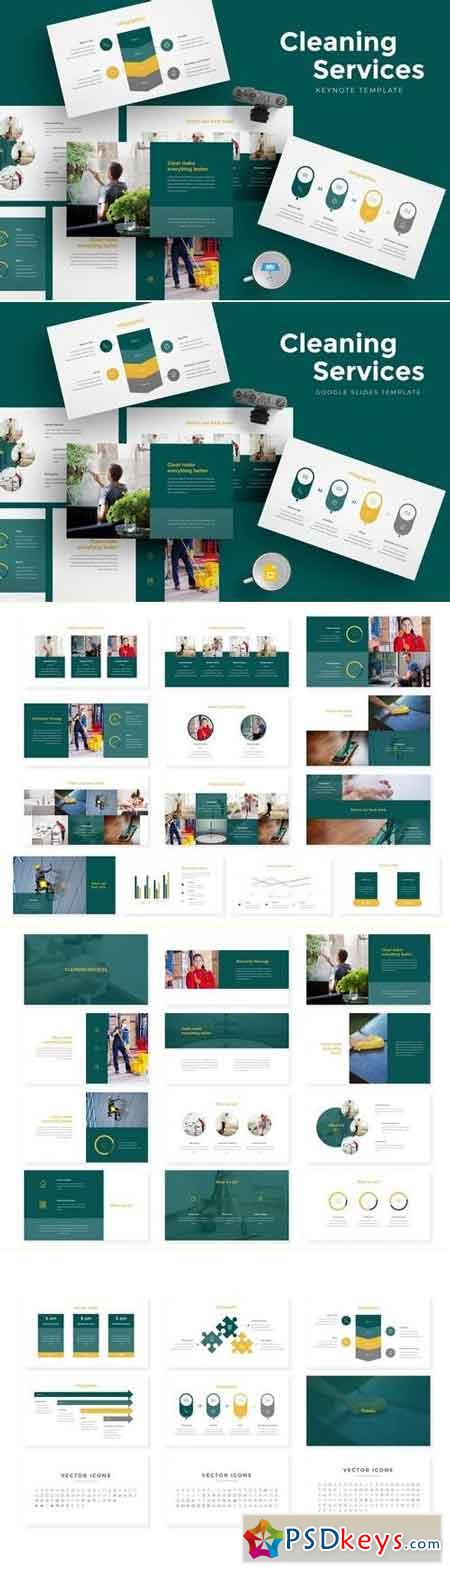 Cleaning Services Keynote & Google Slides Template